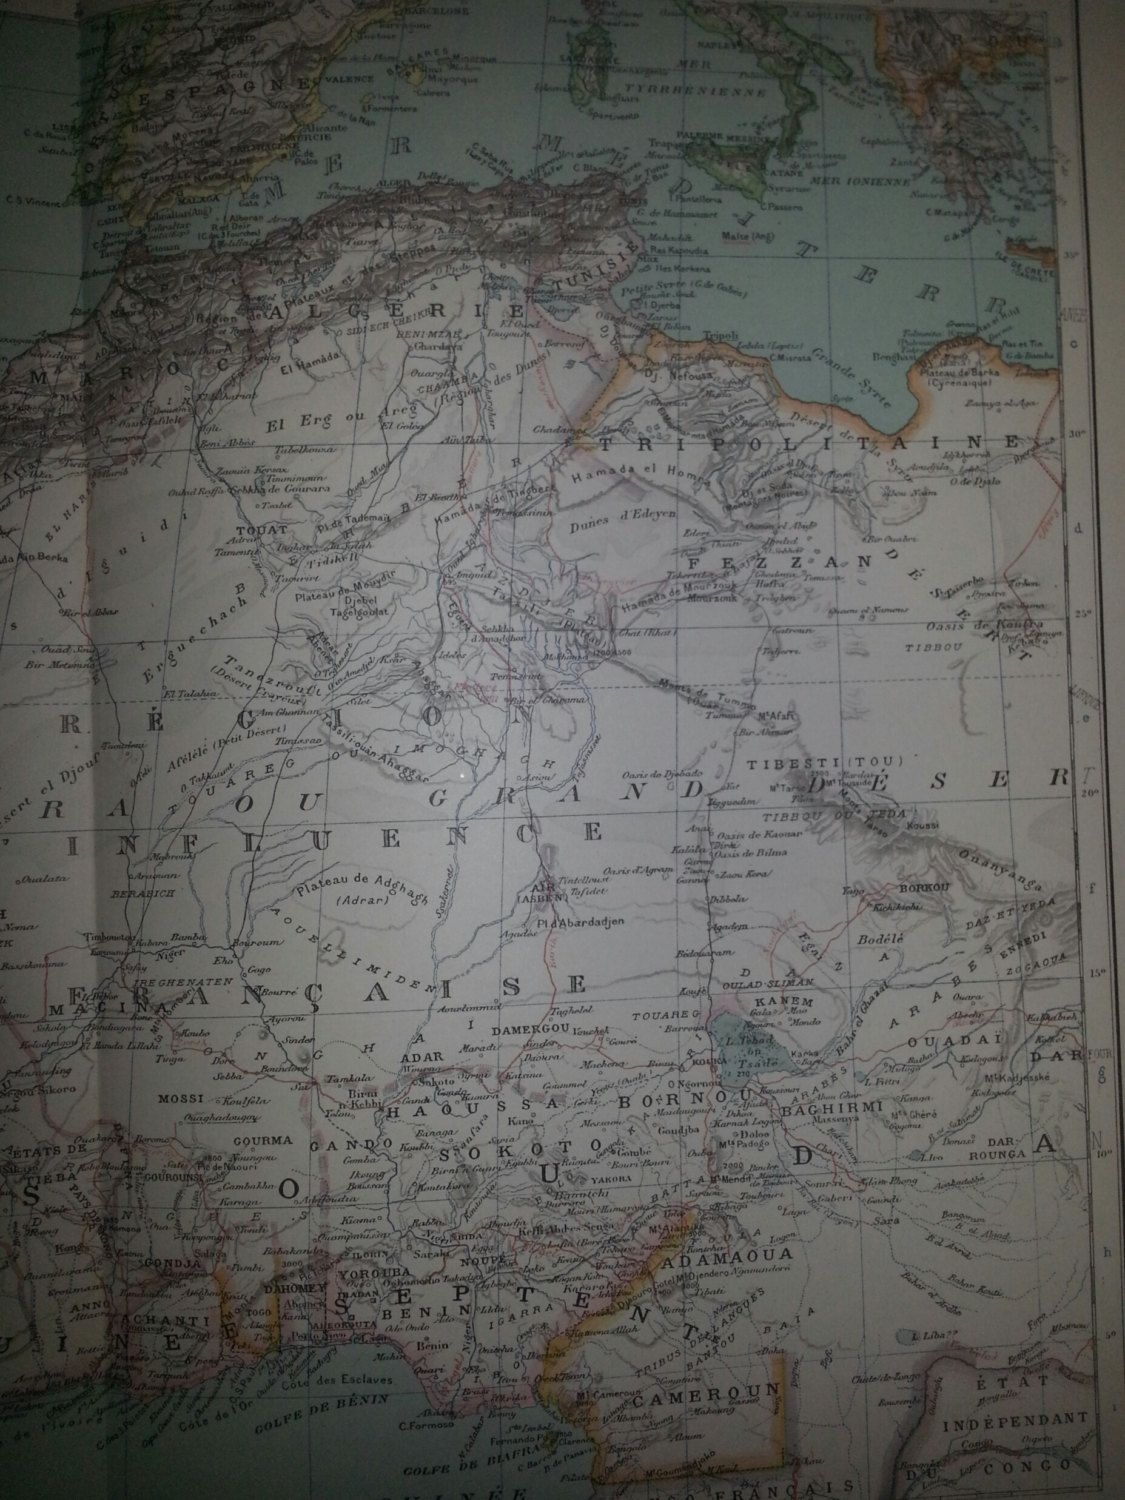 Pin on Antique Maps at Reveriefrance on Etsy